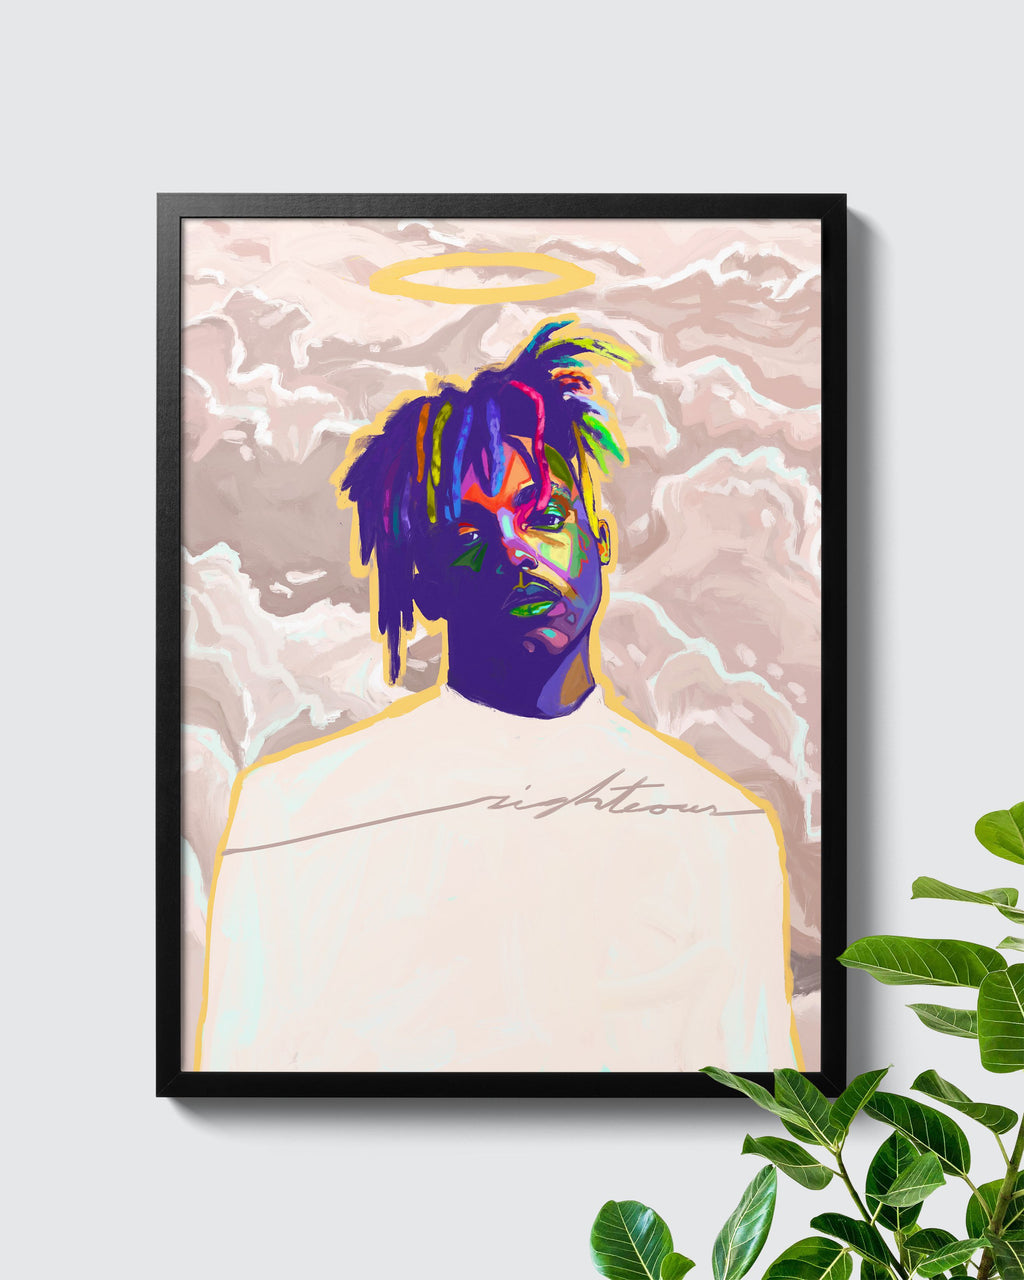 Juice WRLD Righteous Tribute Poster - Nashid Chroma